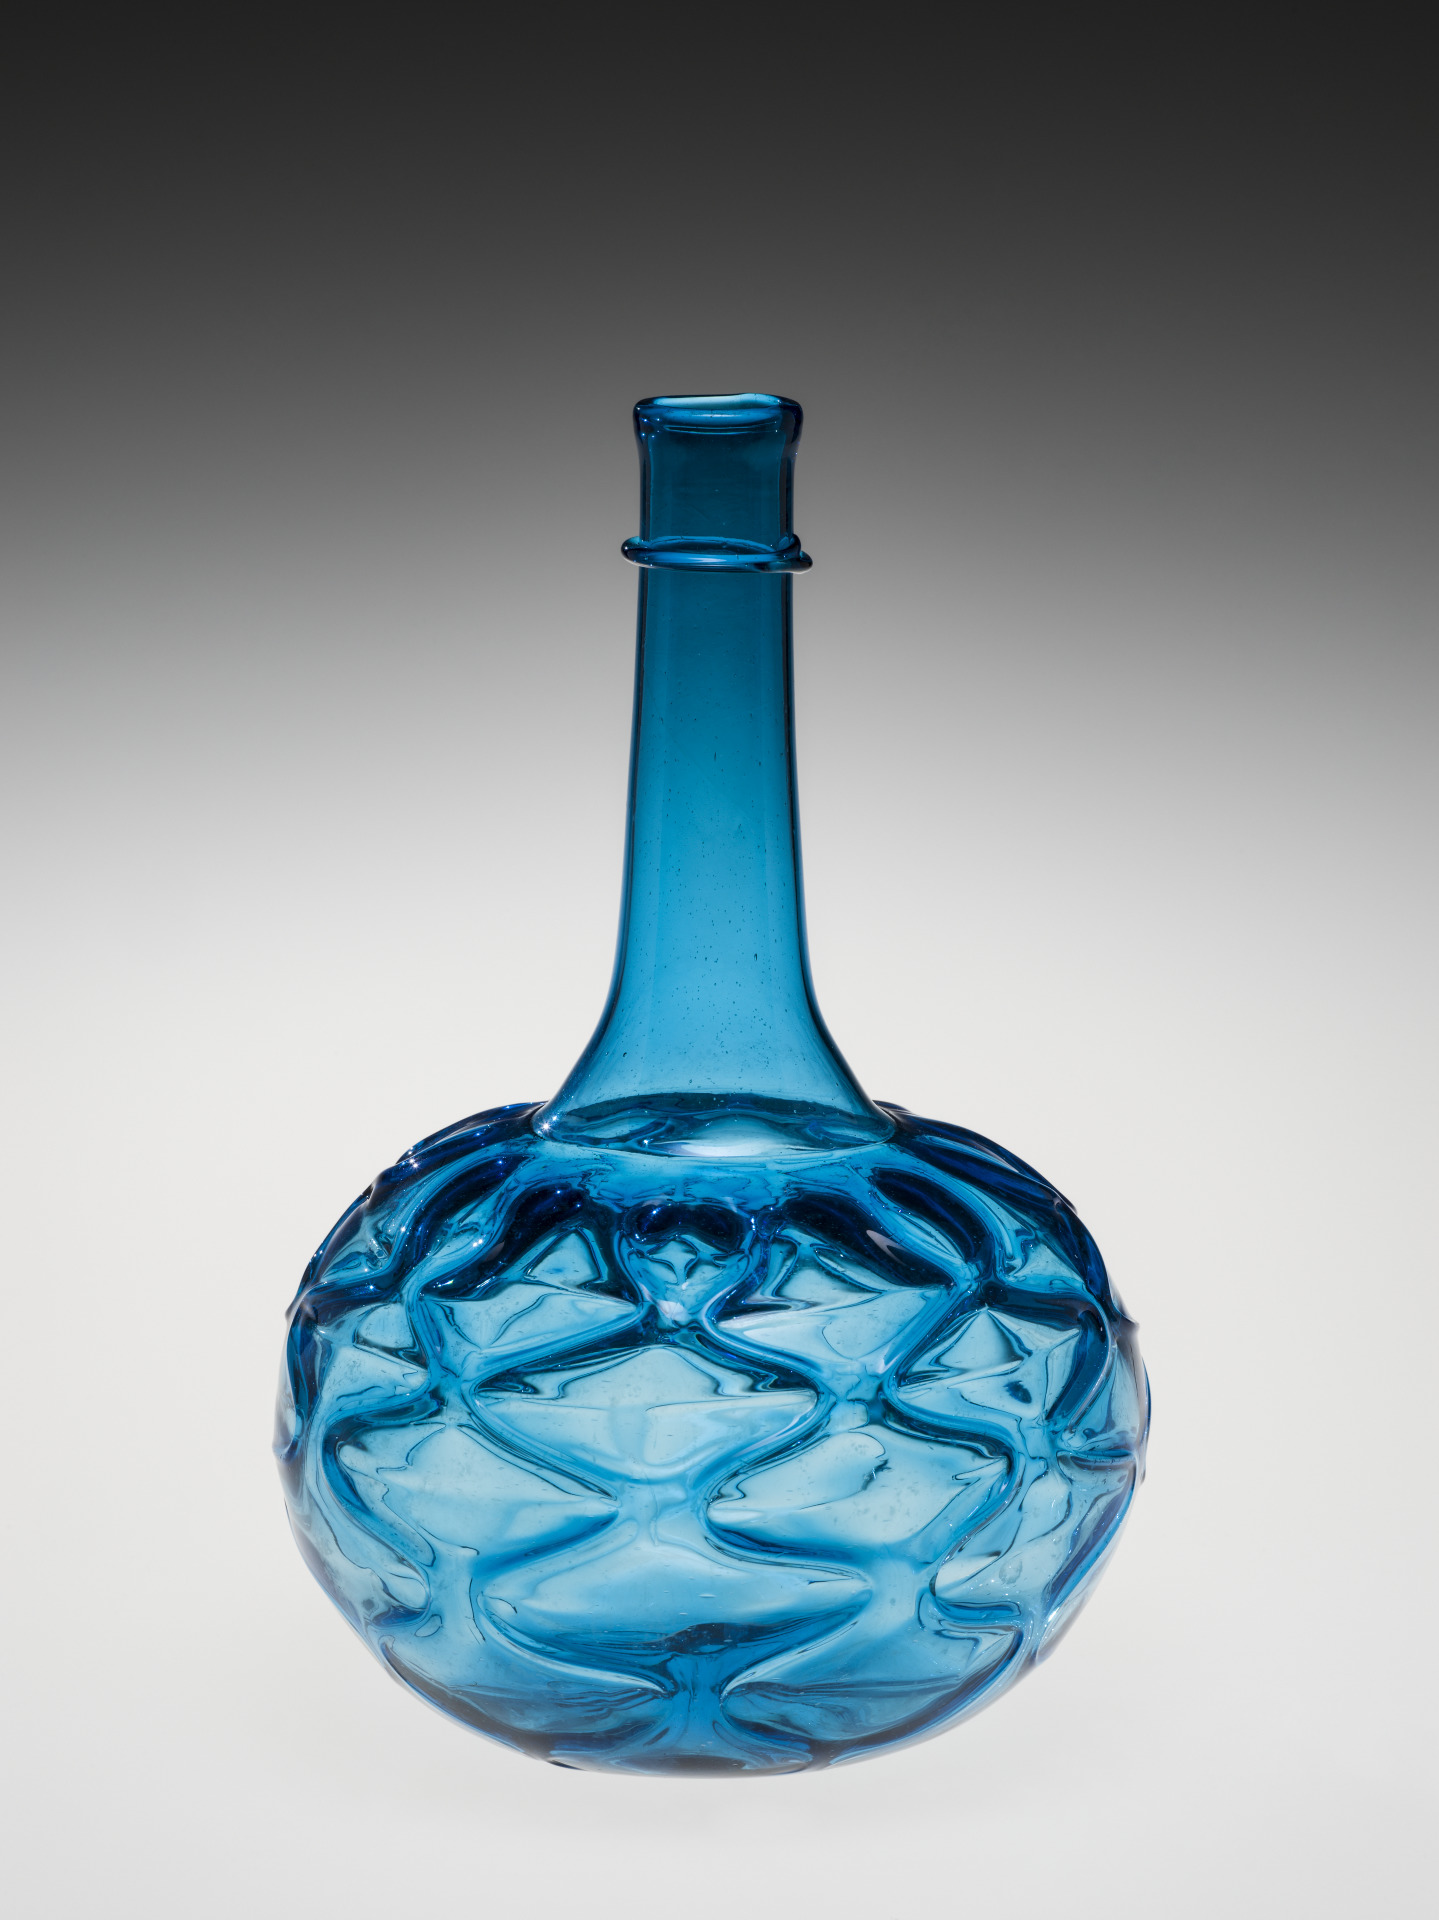 Light blue glass; blown, tooled, applied. The carafe or decanter consists of a mold-blown and tooled bulbous body with kicked base, a narrow shoulder, and a long, straight-sided neck. The body is tooled into a pattern of